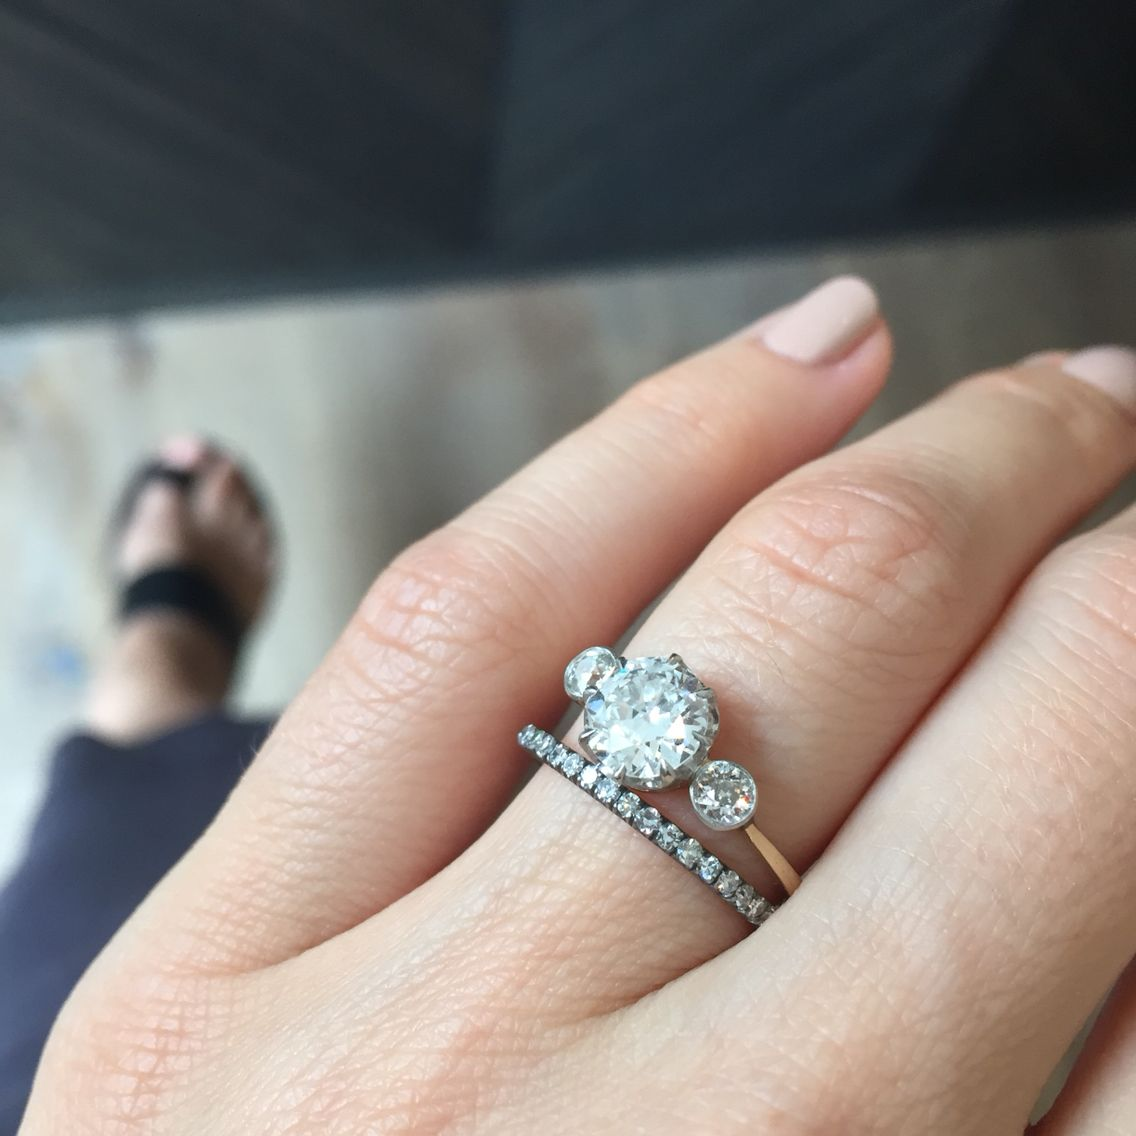 Vintage Three Stone Edwardian Engagement Ring Paired With Our Zephyr Wedding Band